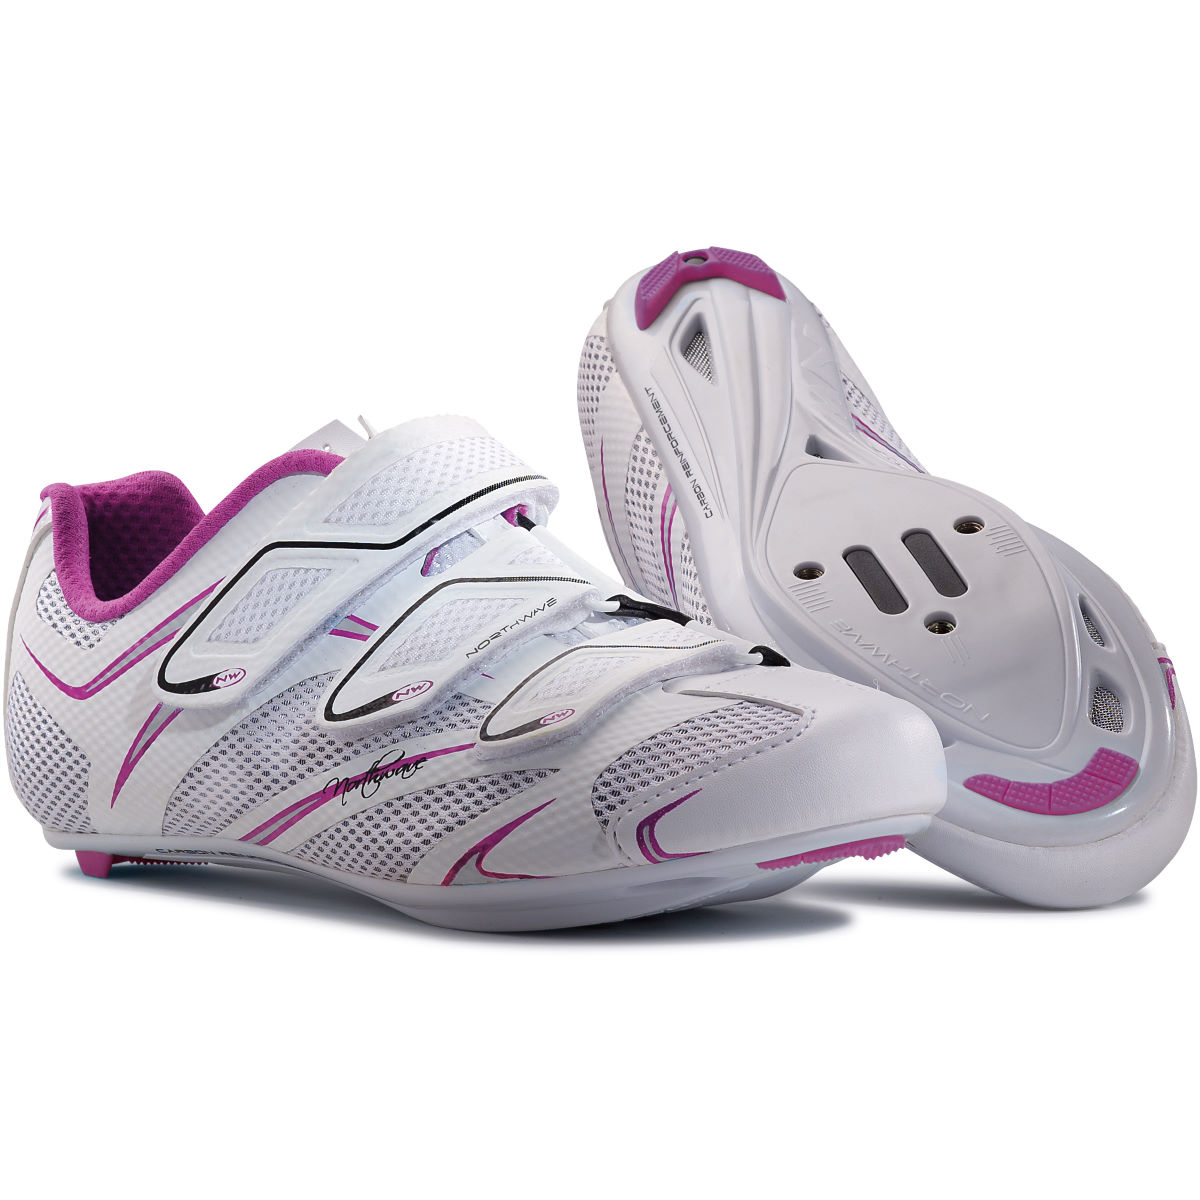 Chaussures de route Femme Northwave Starlight 3S (blanches/violettes)